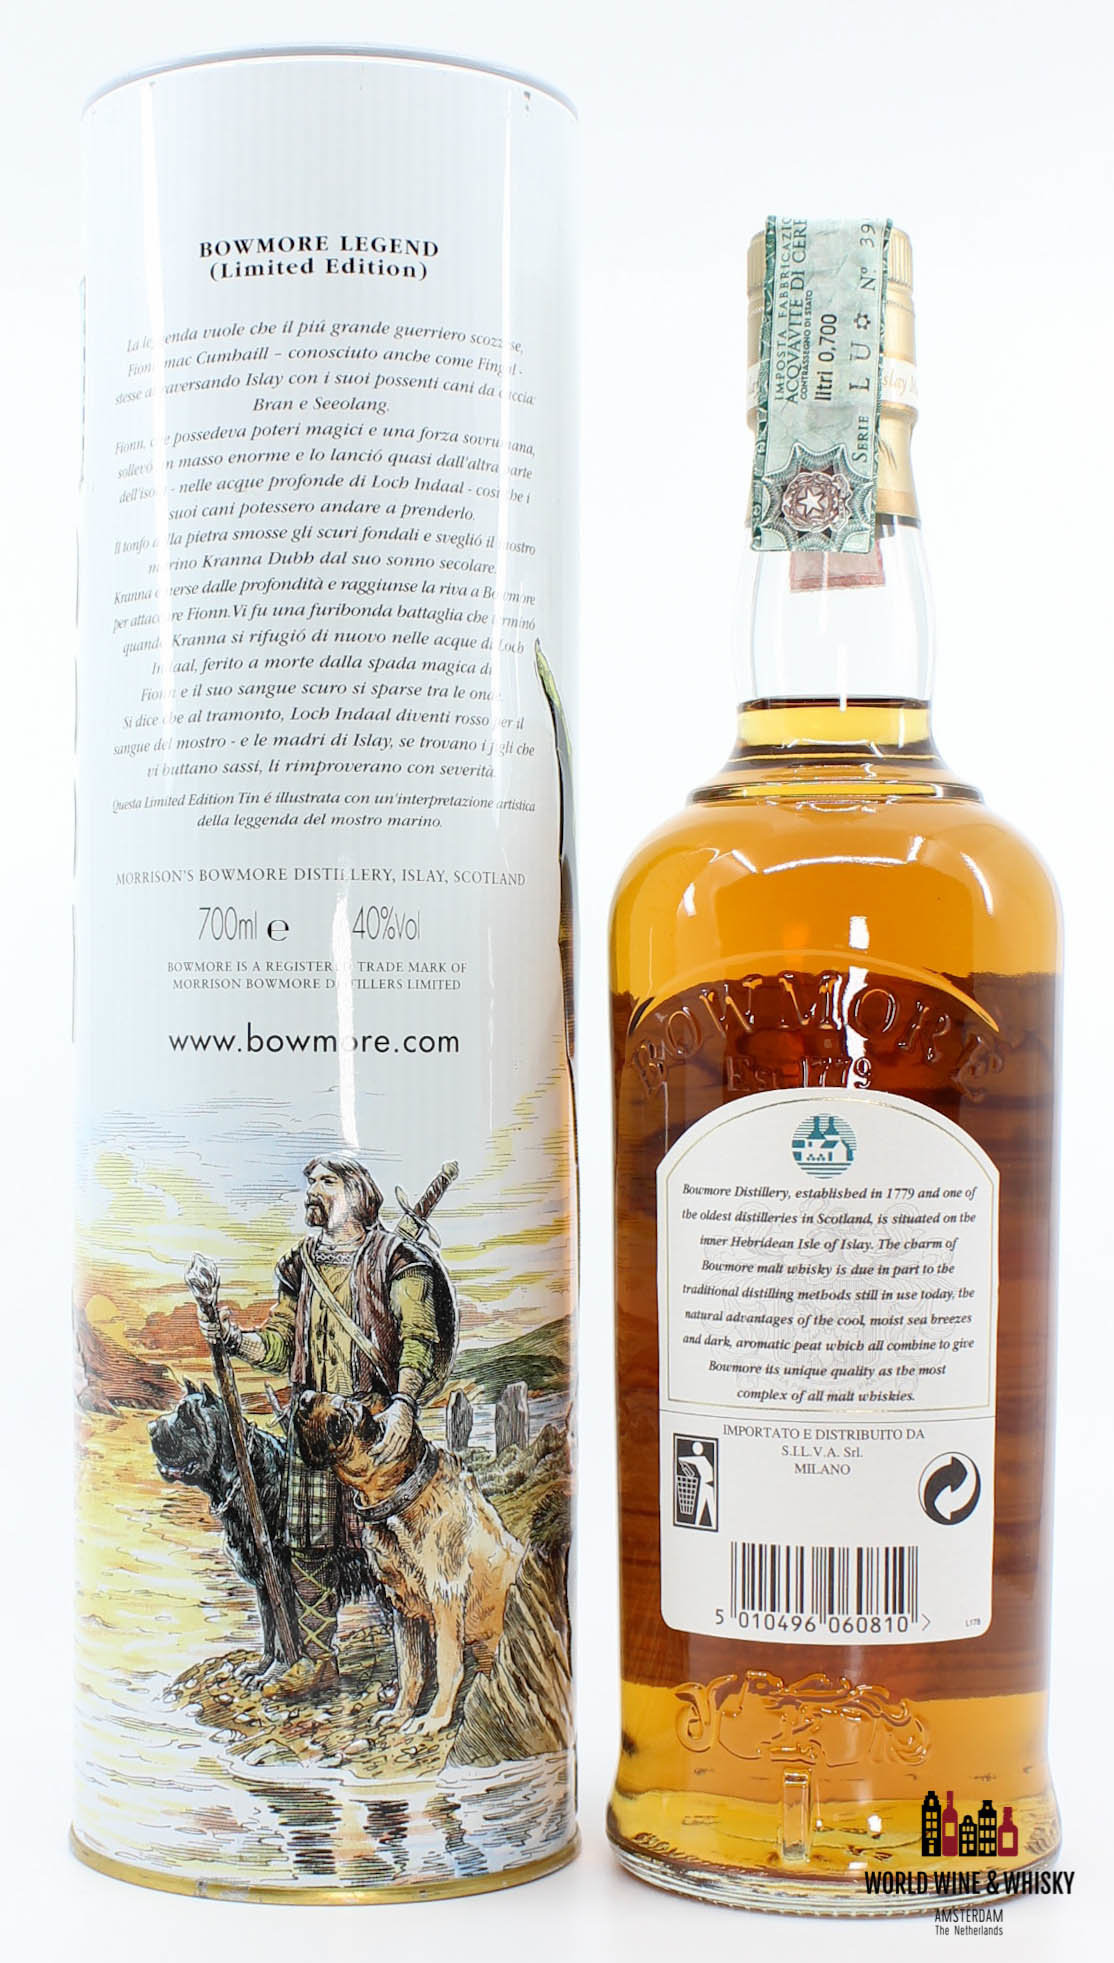 Bowmore Bowmore Legend 8 Years Old - The Sea Dragon 2003 40%